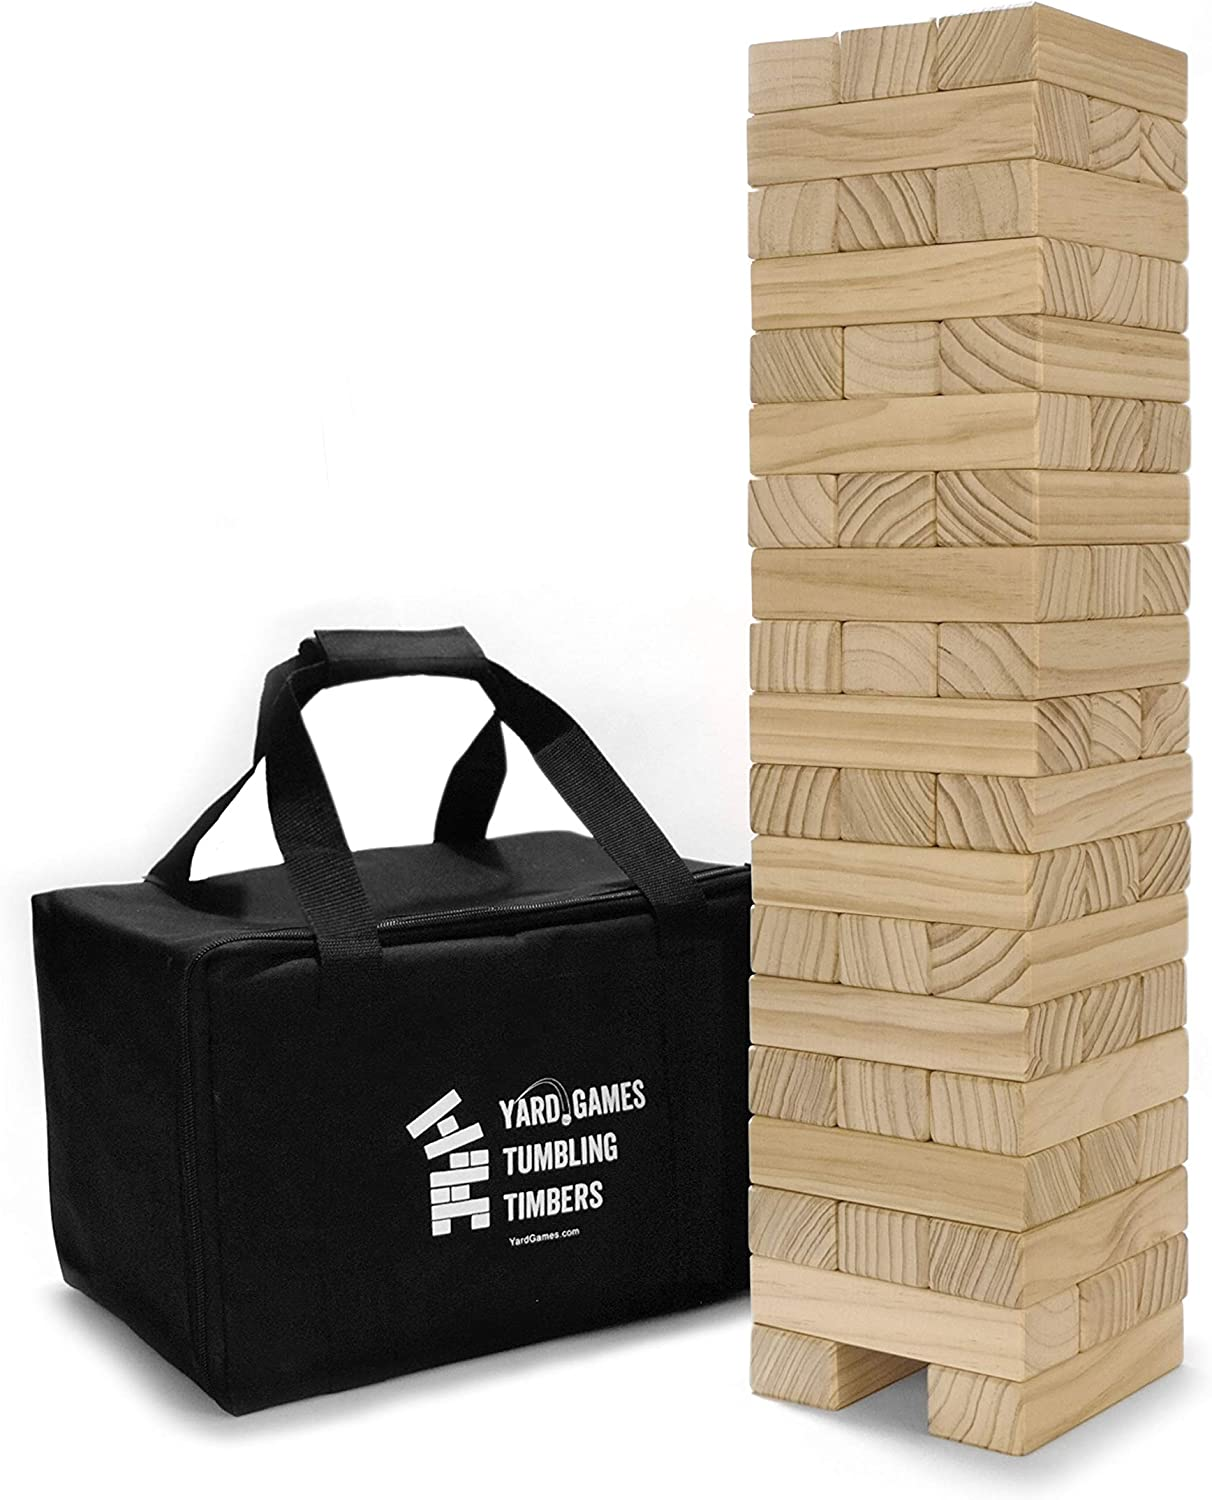 Yard Games Large Tumbling Timbers Carrying Case Tulsa Mall Recommended Starts with at